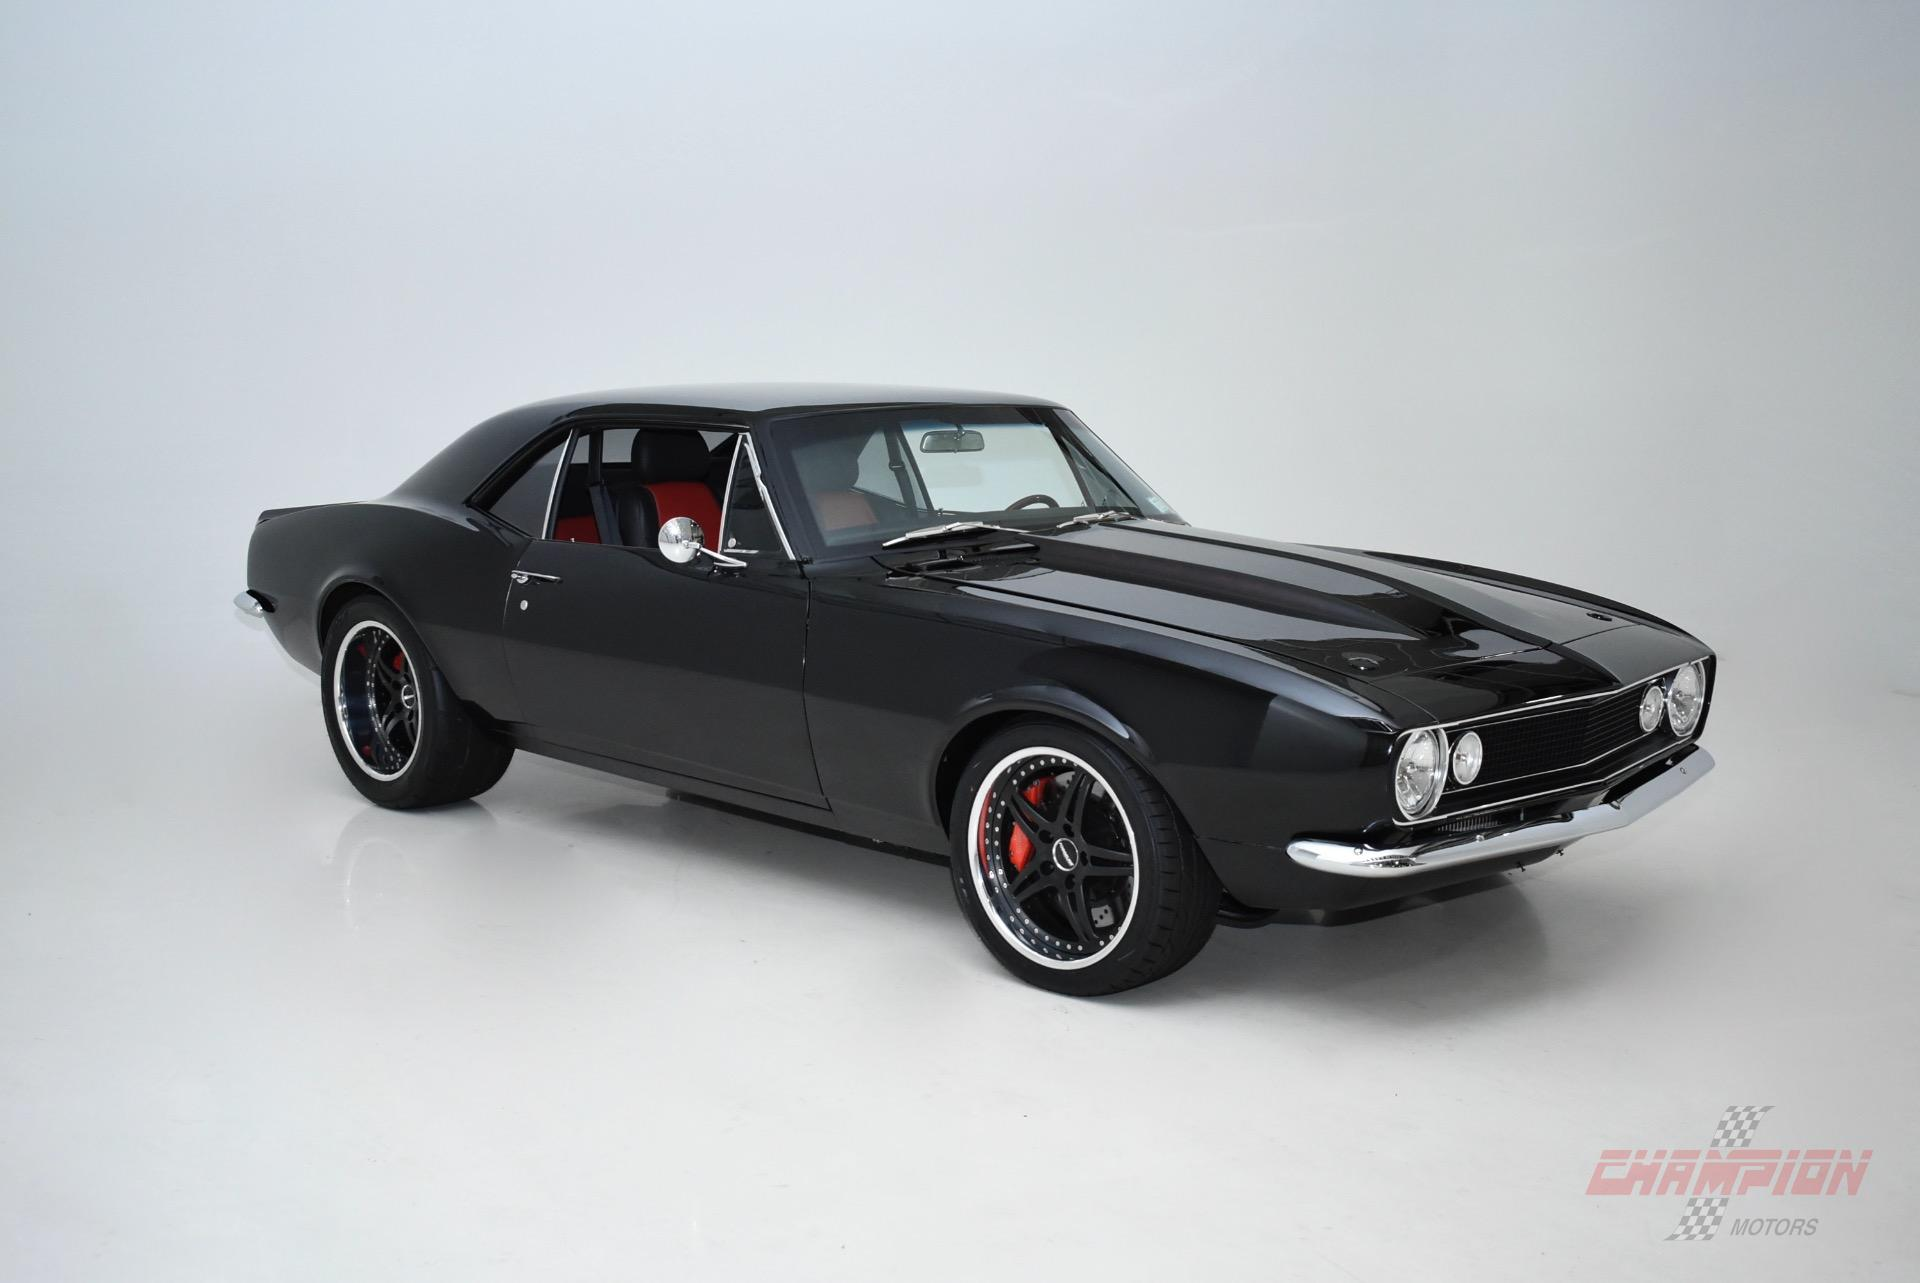 1967 Chevrolet Camaro Pro Touring Twin Turbo Exotic Classic Car